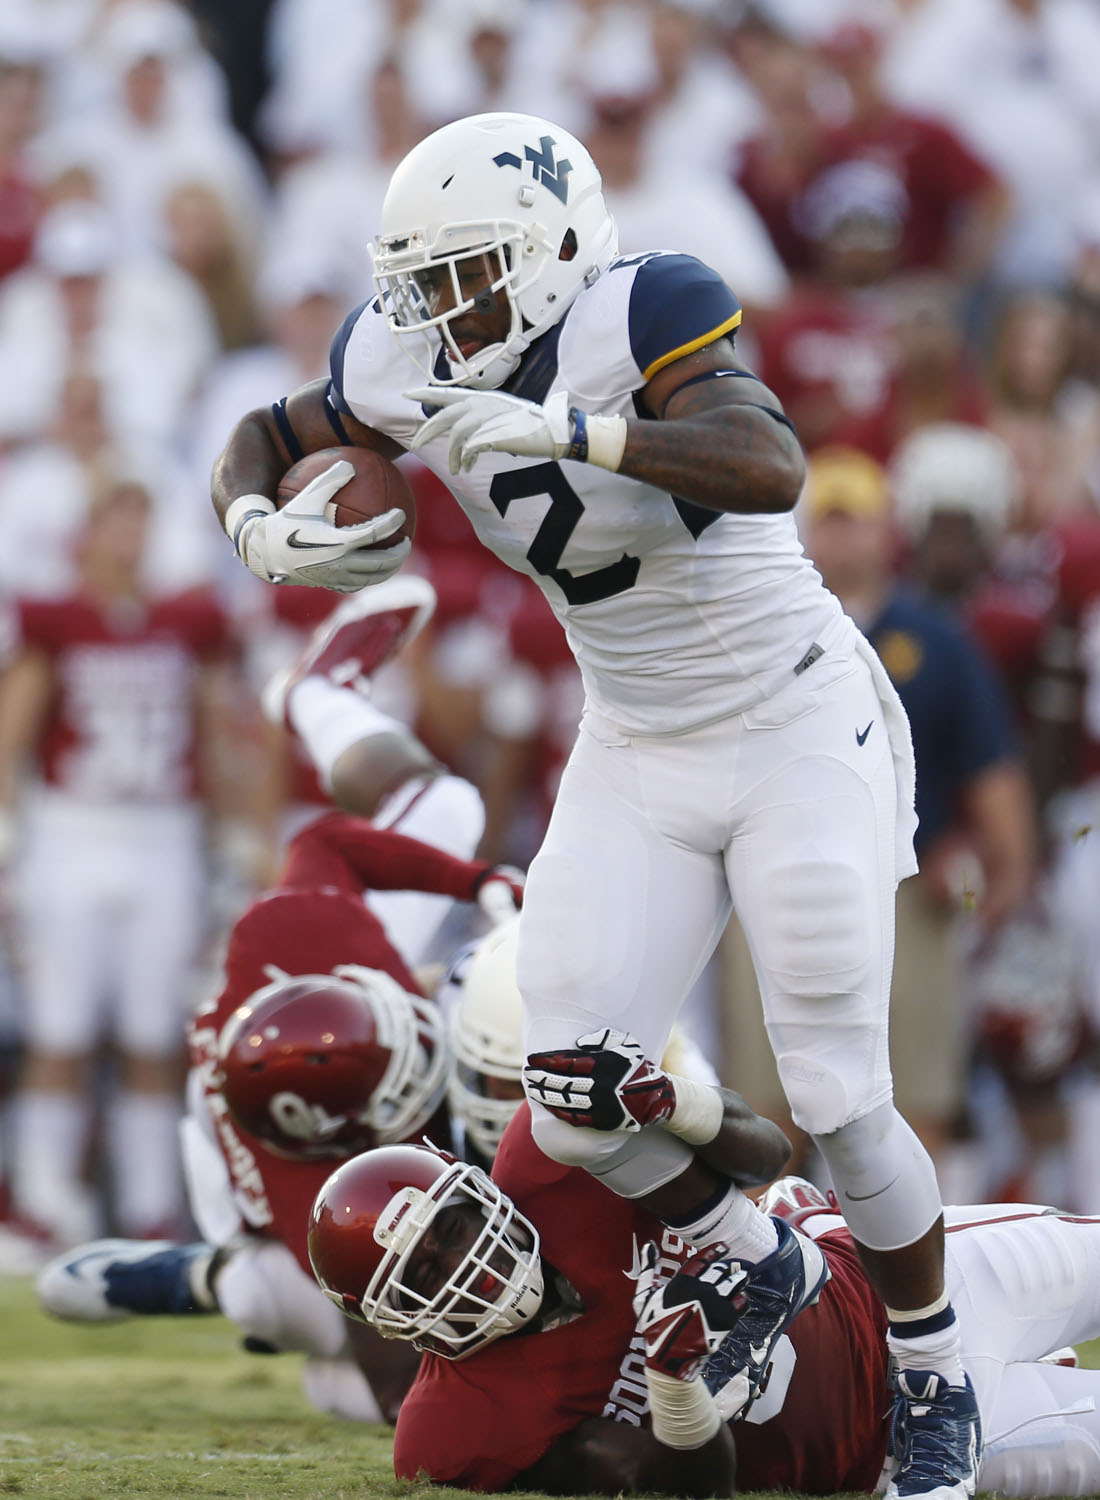 West Virginia running back Dreamius Smith (2) fights off a tackle by Oklahoma defensive back Gabe Lynn (9) and takes off on a 75 yard touchdown run in the first quarter of an NCAA college football game in Norman, Okla., Saturday, Sept. 7, 2013. (AP Photo/Sue Ogrocki)